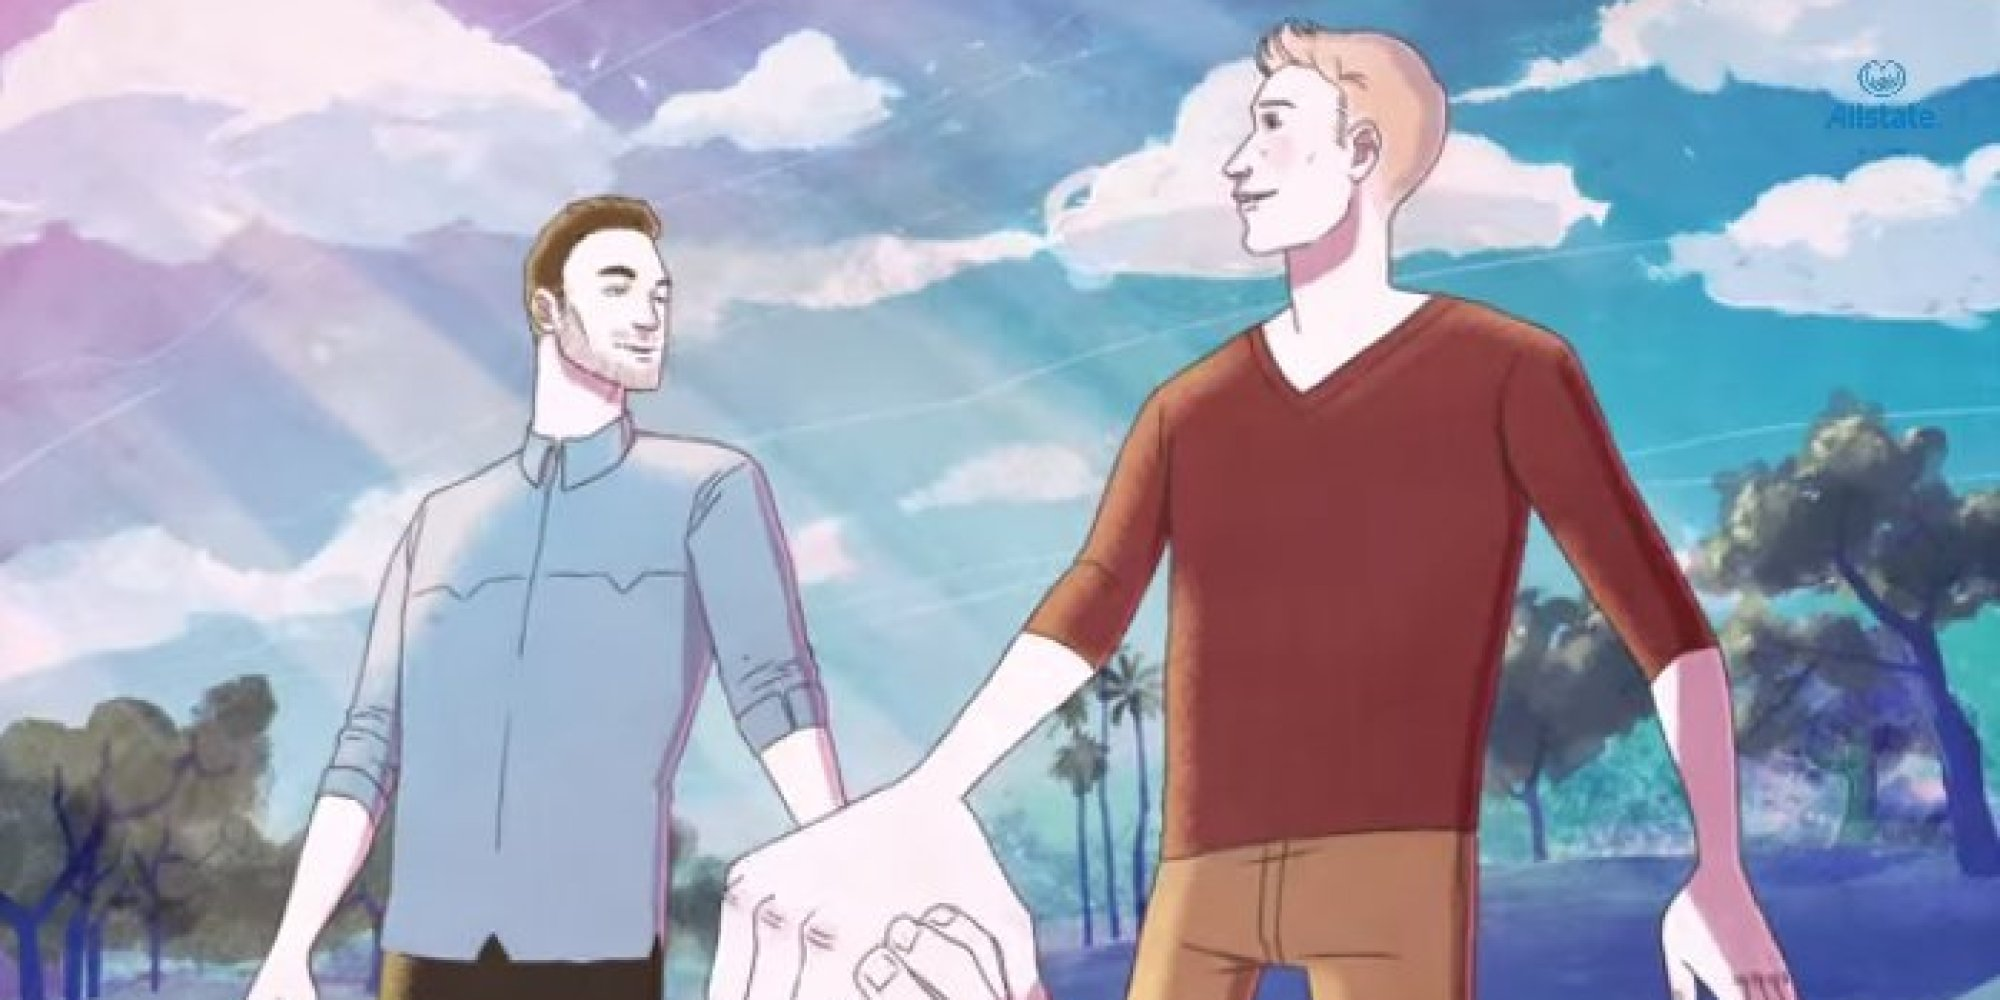 Allstate Insurance Debuts 'Safe In My Hands' Commercial And Gay